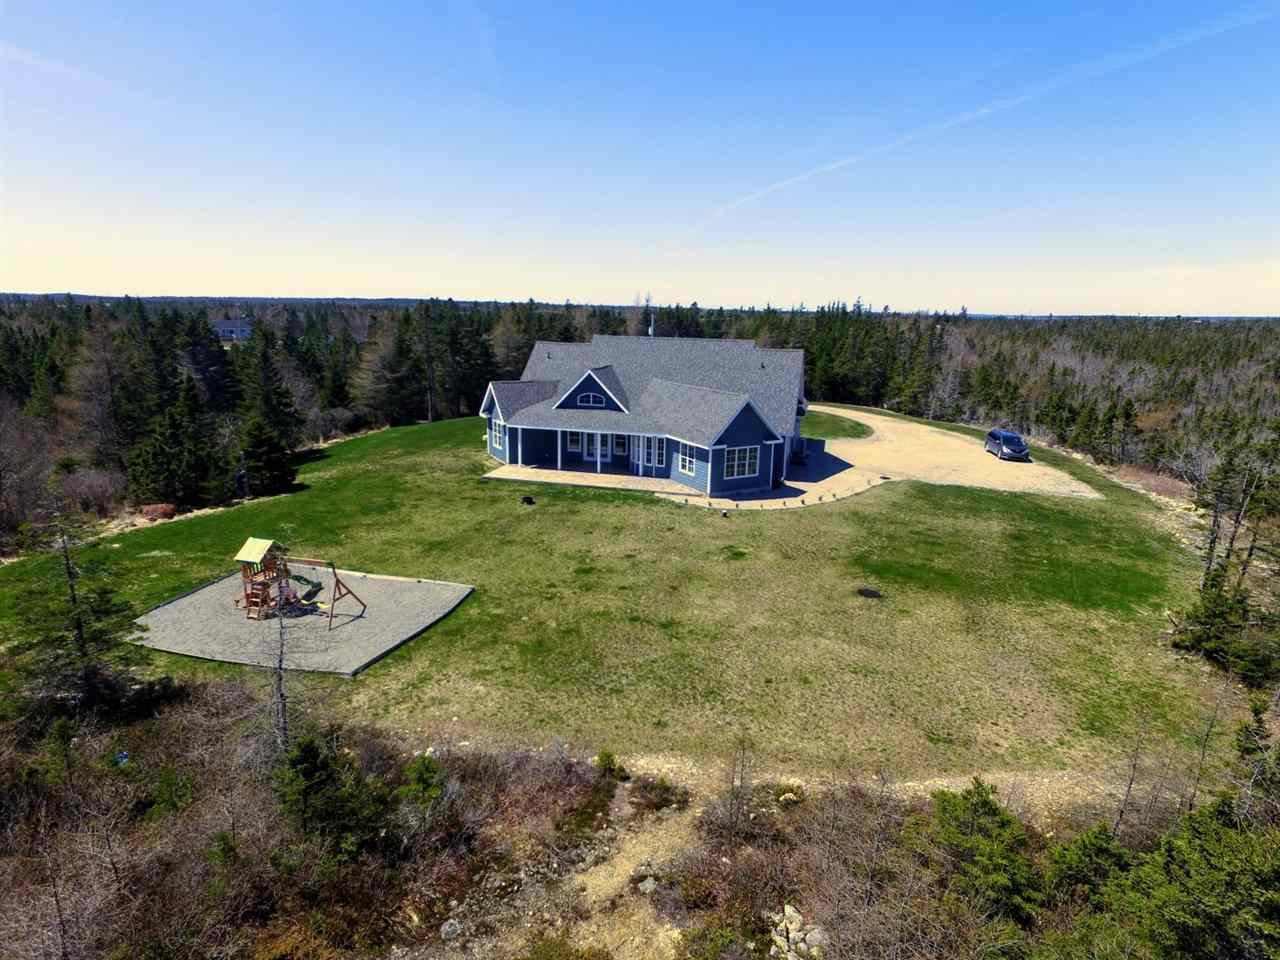 Photo 5: Photos: 1902 Stoney Island Road in Centreville: 407-Shelburne County Residential for sale (South Shore)  : MLS®# 201926888